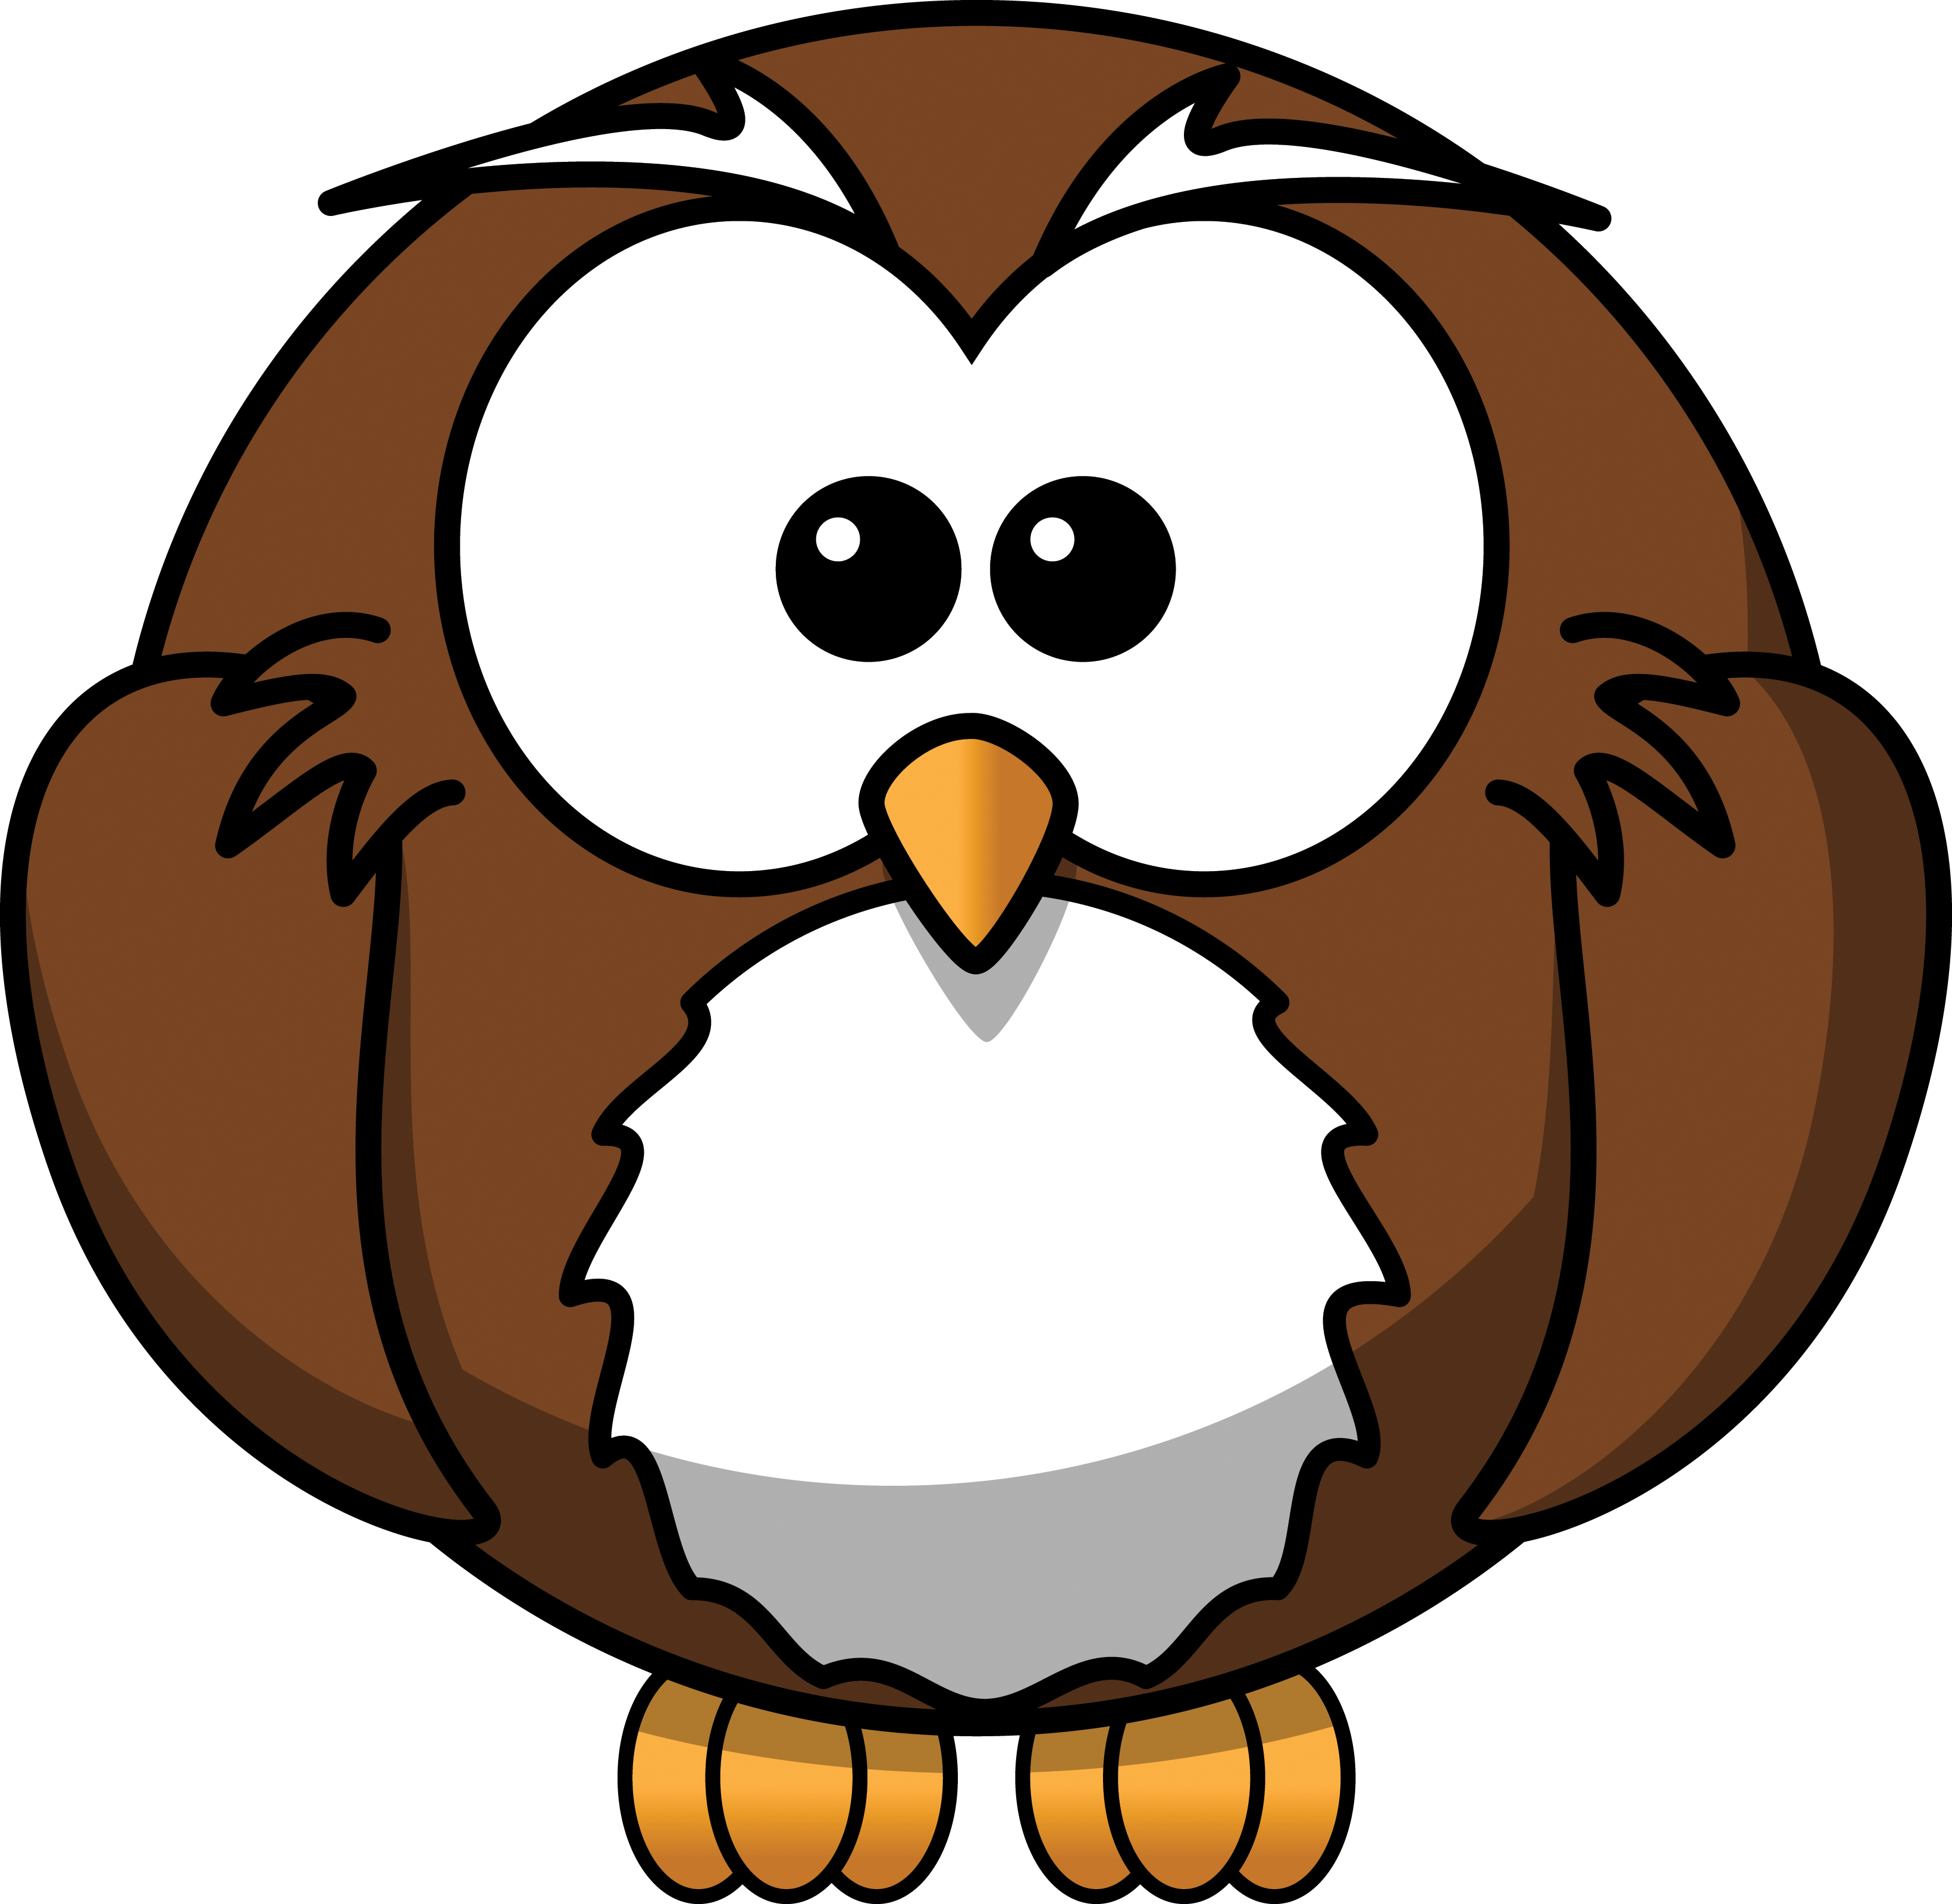 Free Cartoon Owl Clipart by 0001176 .-Free Cartoon Owl Clipart by 0001176 .-1